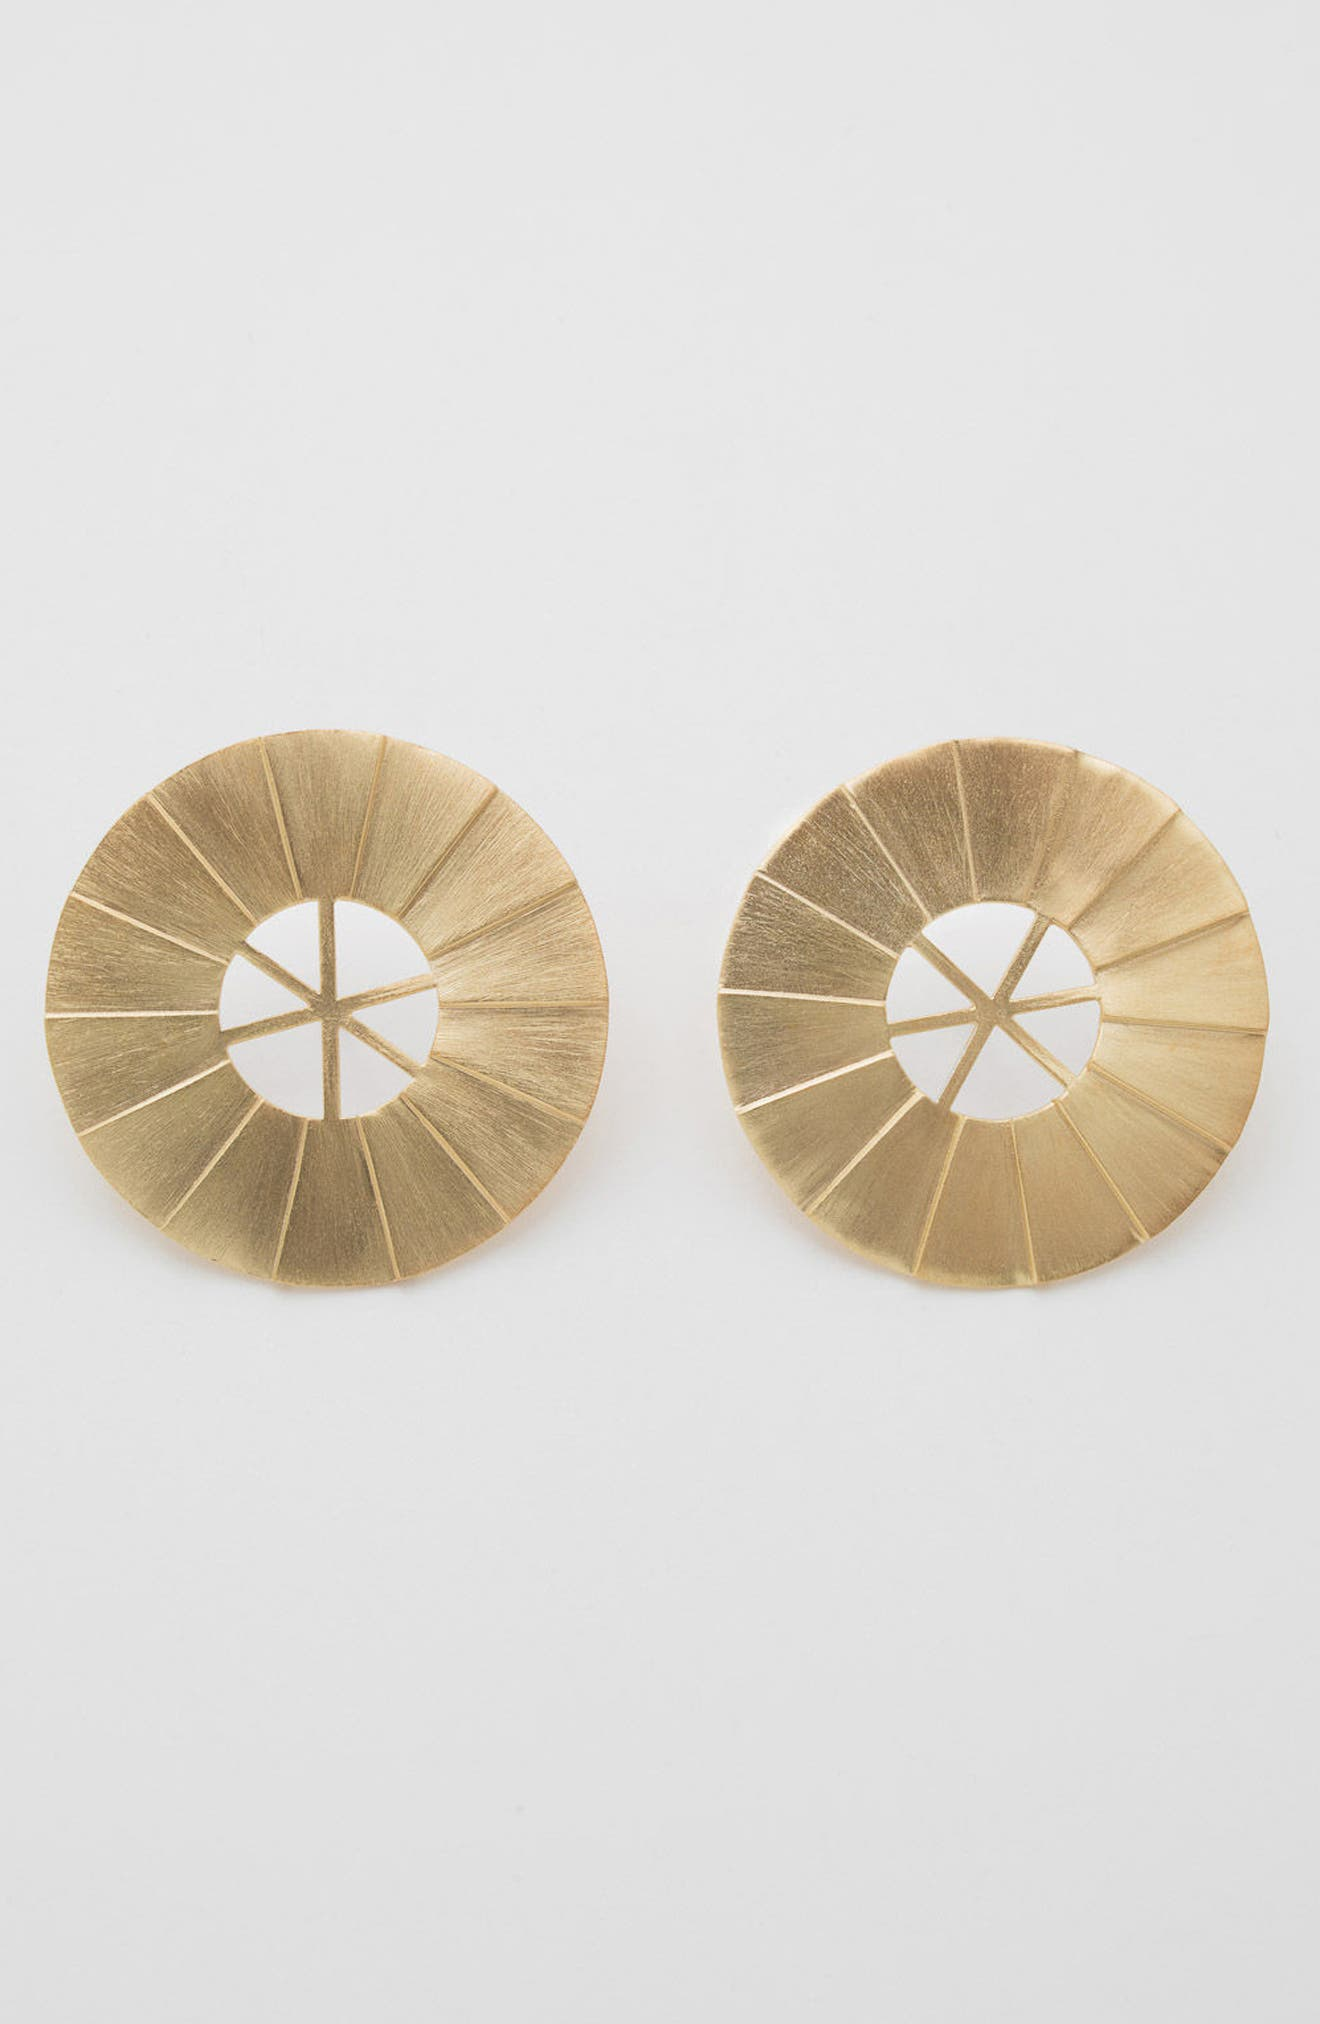 Windmill Brushed Vermeil Statement Earrings,                             Alternate thumbnail 3, color,                             Brushed Vermeil